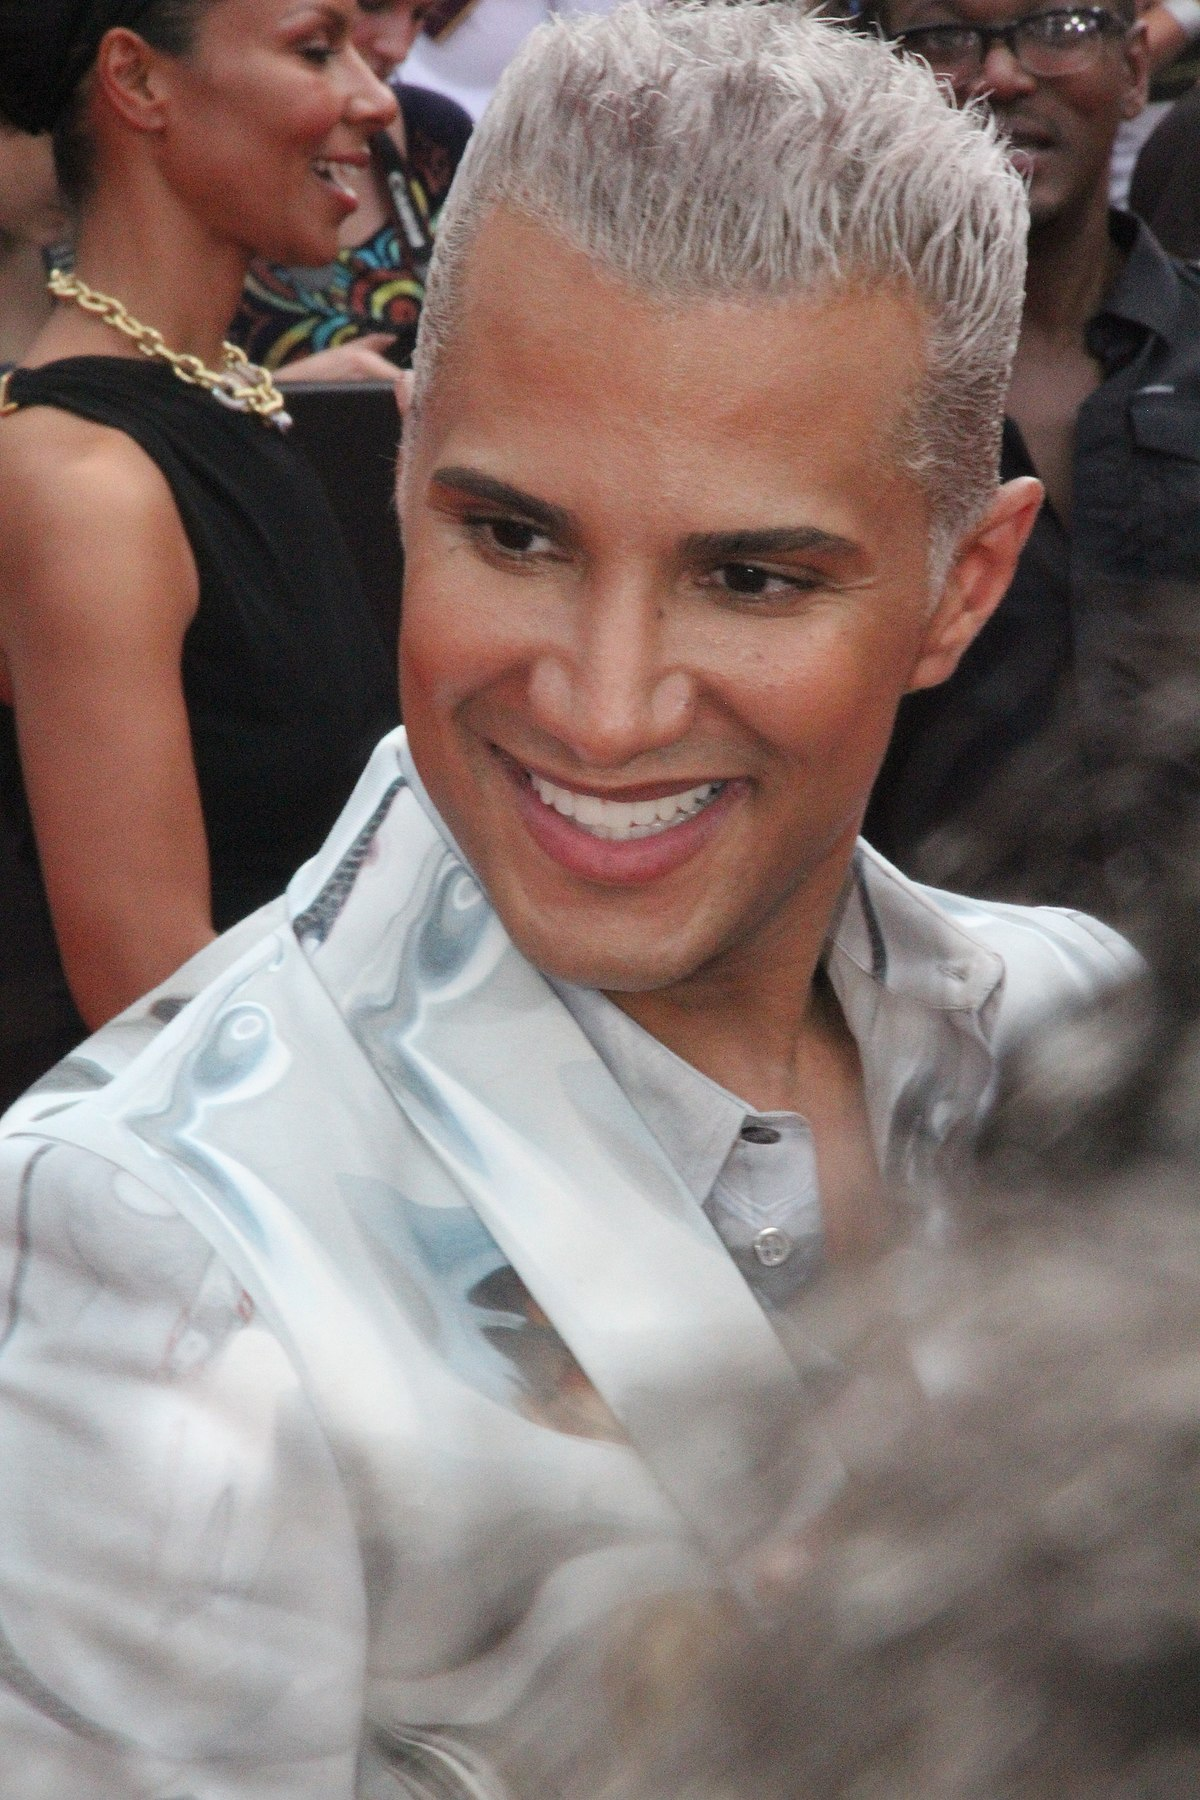 from Phoenix is jay manuel gay